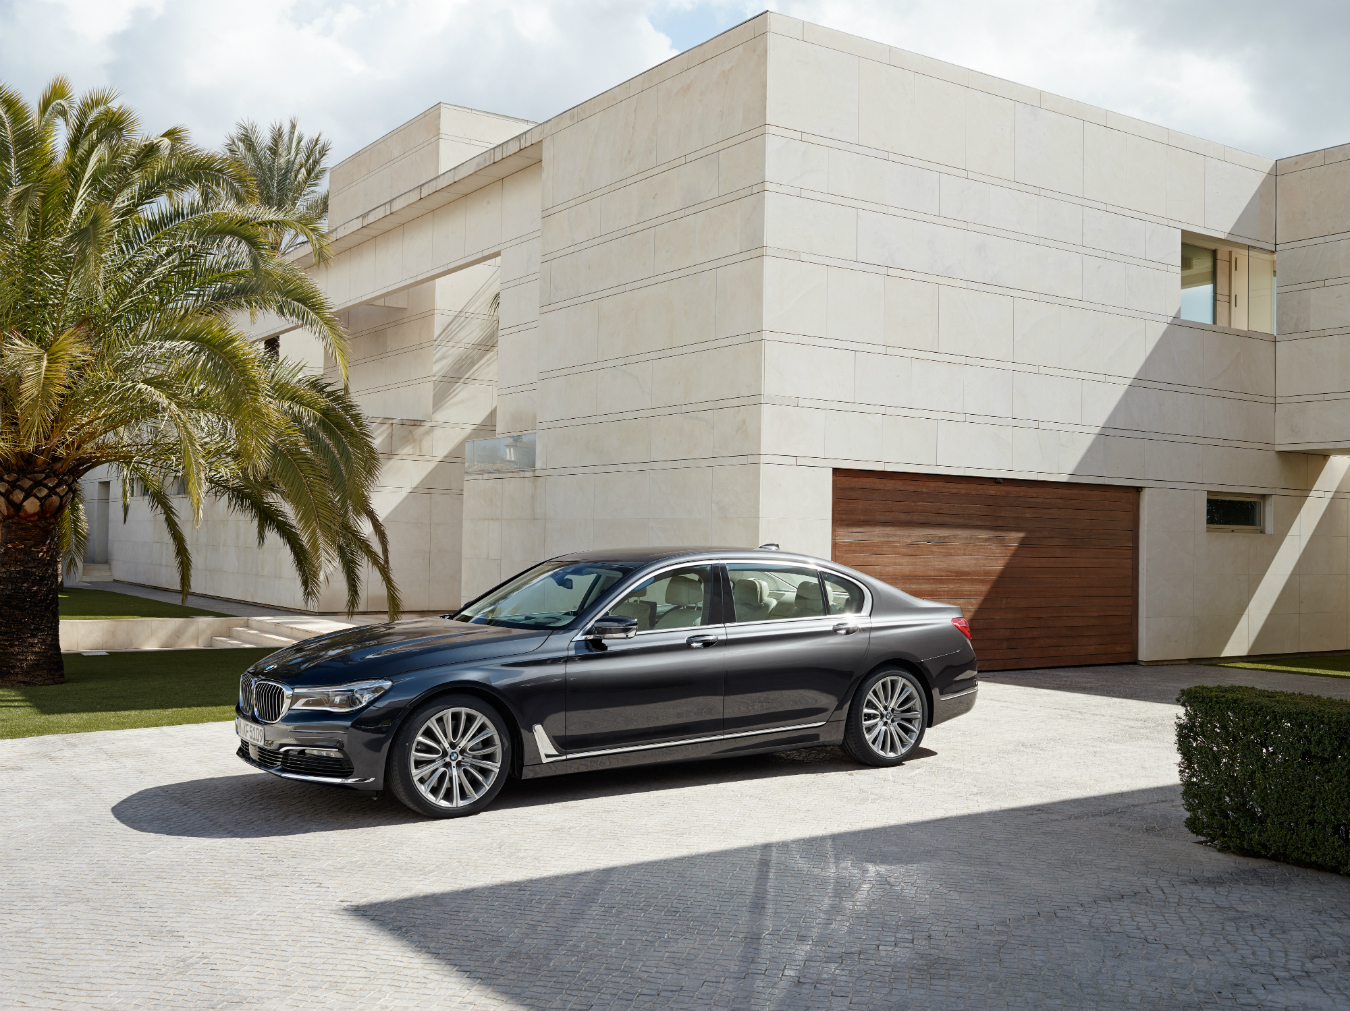 NUVO Winter 2015: Reinvented BMW 7 Series, Ticket to Ride